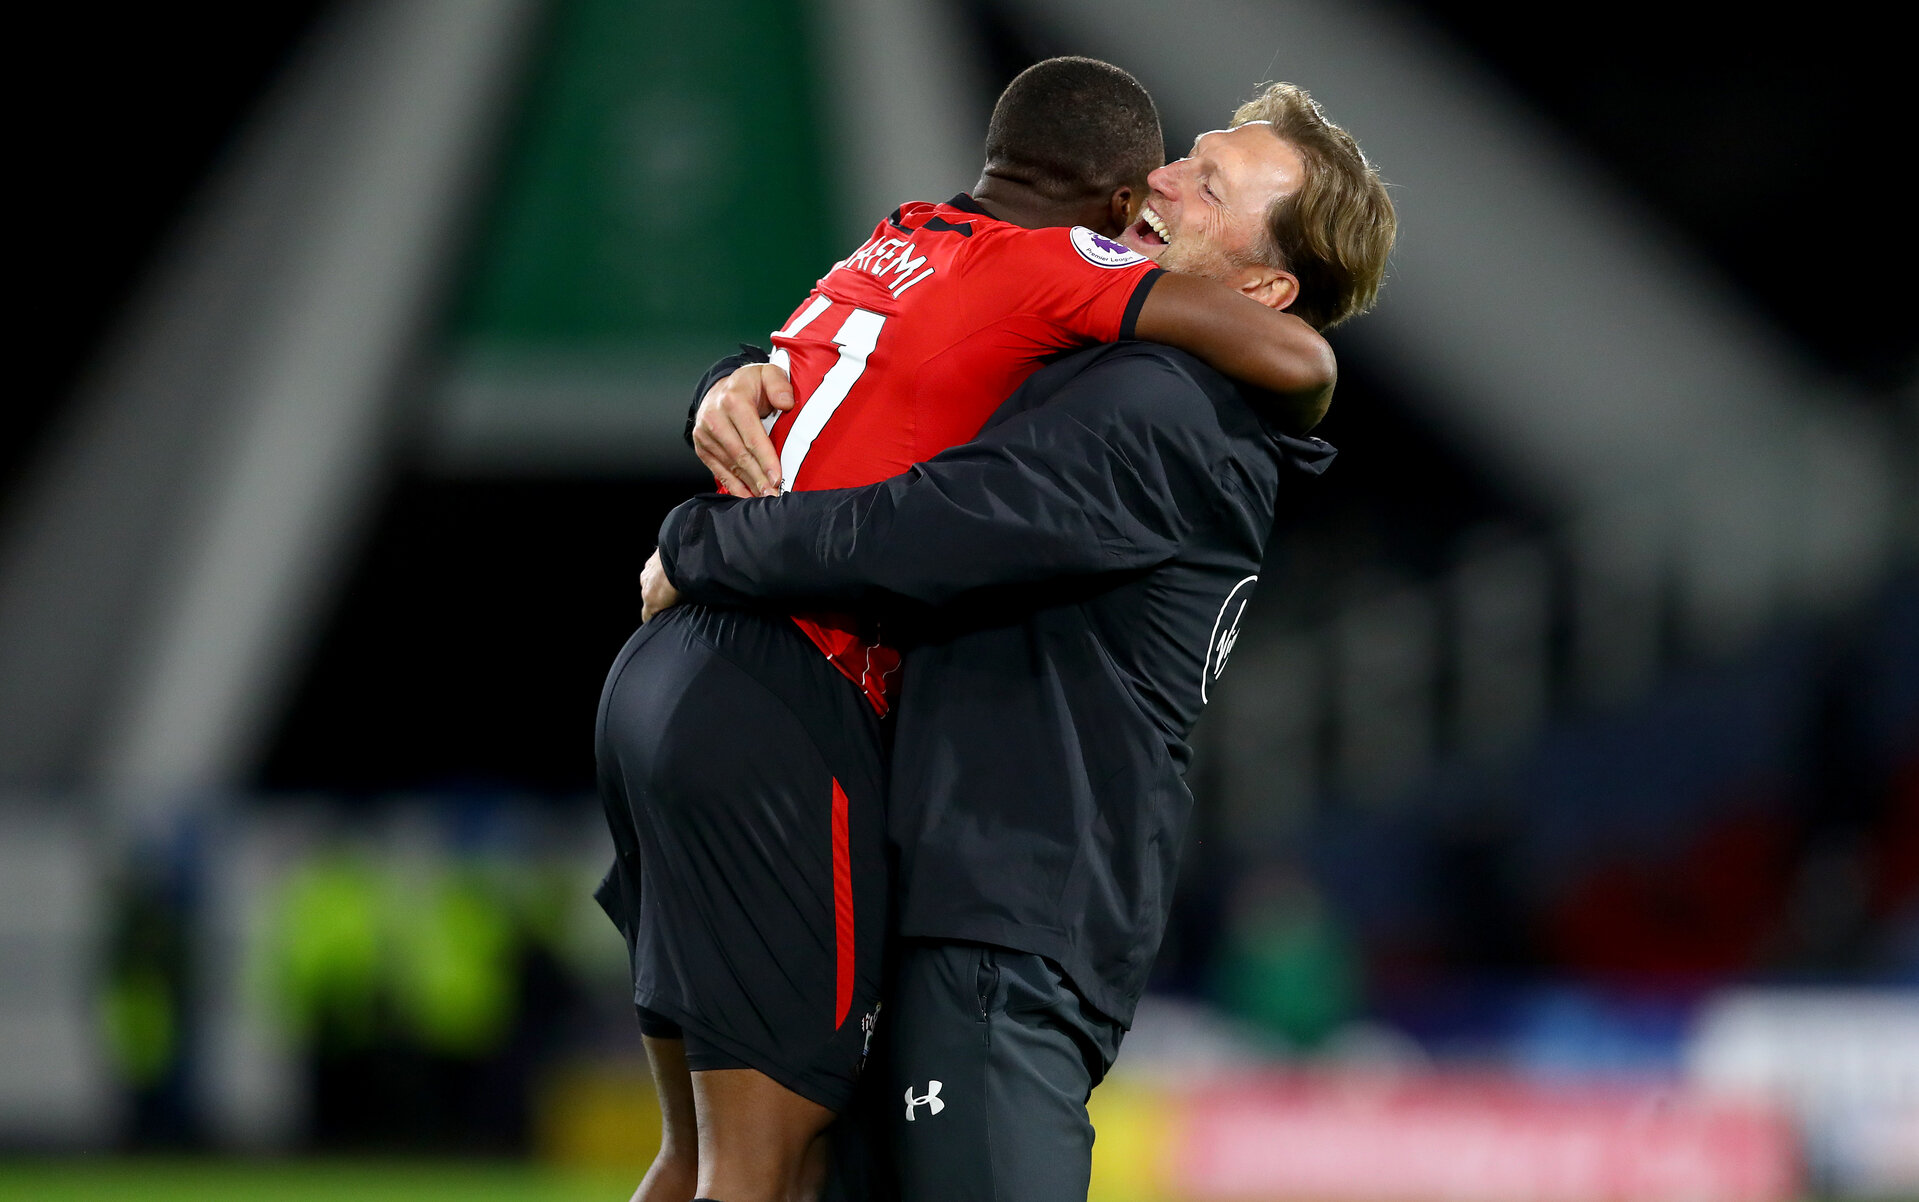 HUDDERSFIELD, ENGLAND - DECEMBER 22:  Michael Obafemi(L) and Ralph Hasenhuttl of Southampton during the Premier League match between Huddersfield Town and Southampton FC at John Smith's Stadium on December 22, 2018 in Huddersfield, United Kingdom. (Photo by Matt Watson/Southampton FC via Getty Images)